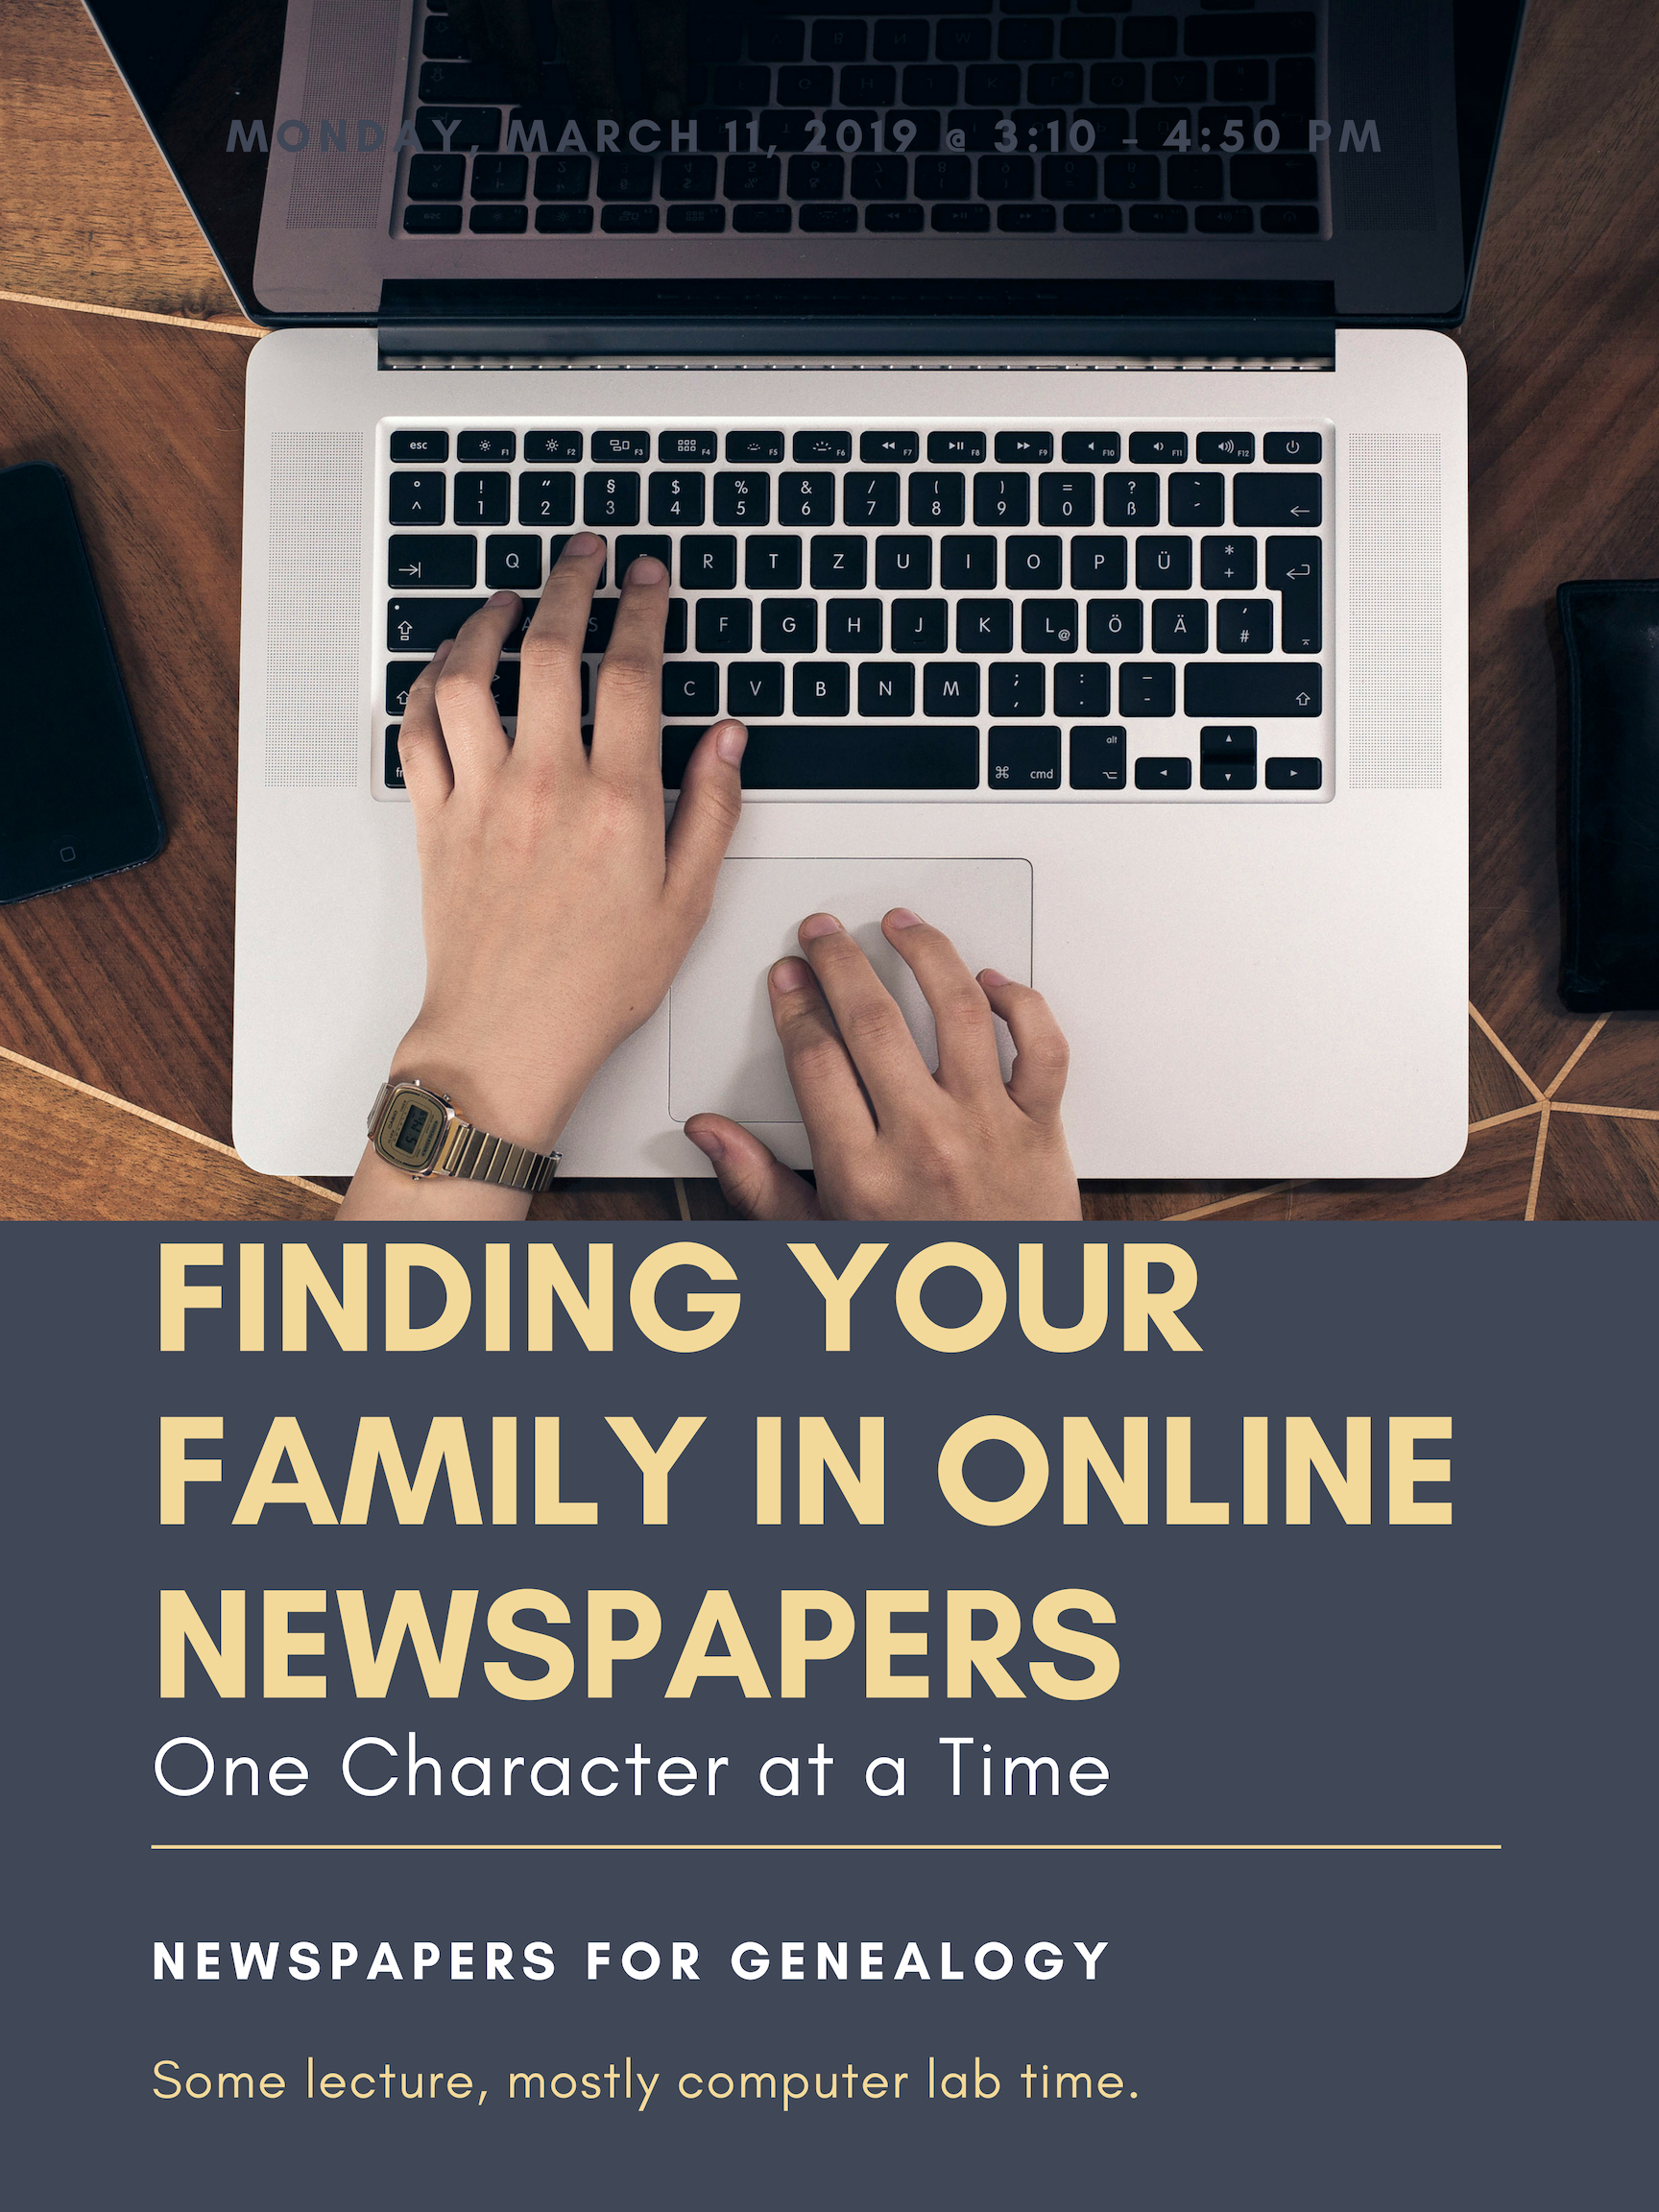 Finding your family in downtown newspapers